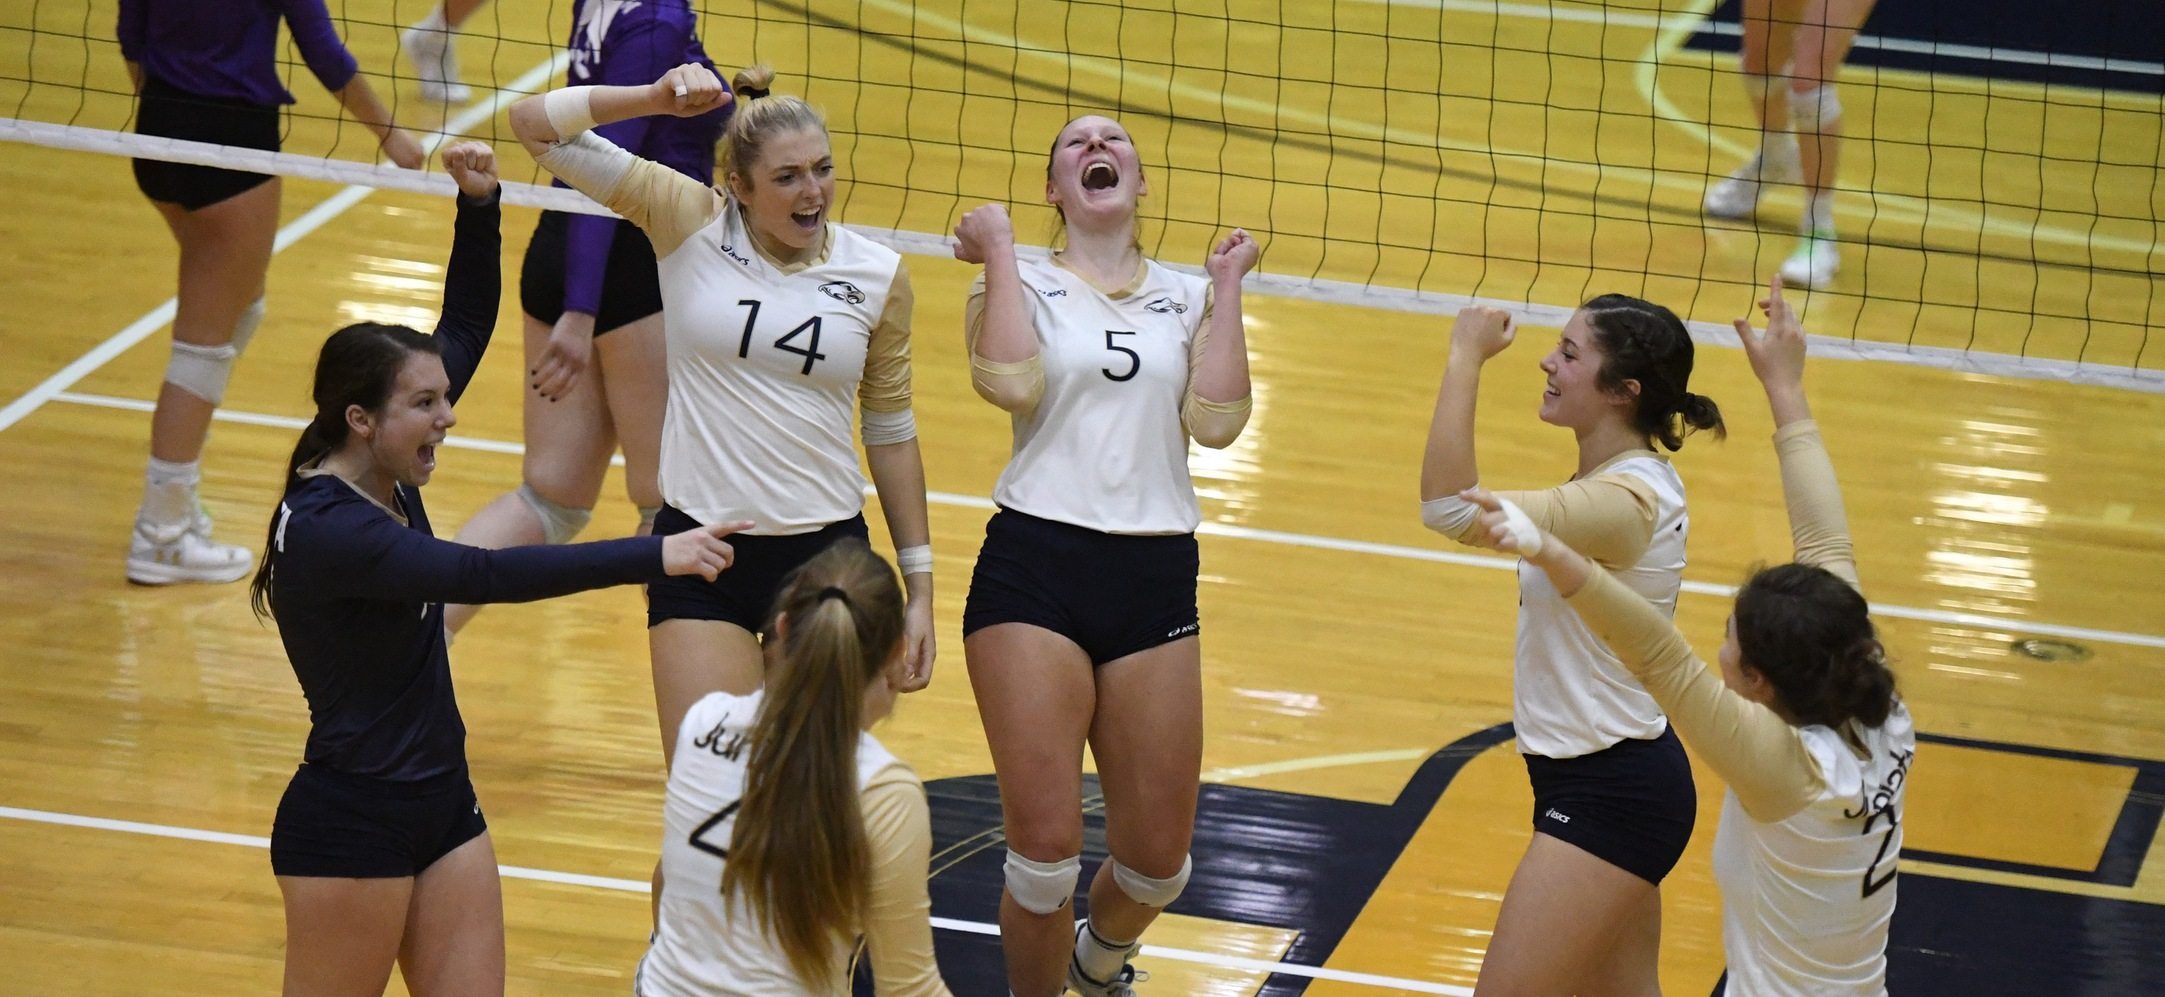 Juniata women's volleyball team celebrating.